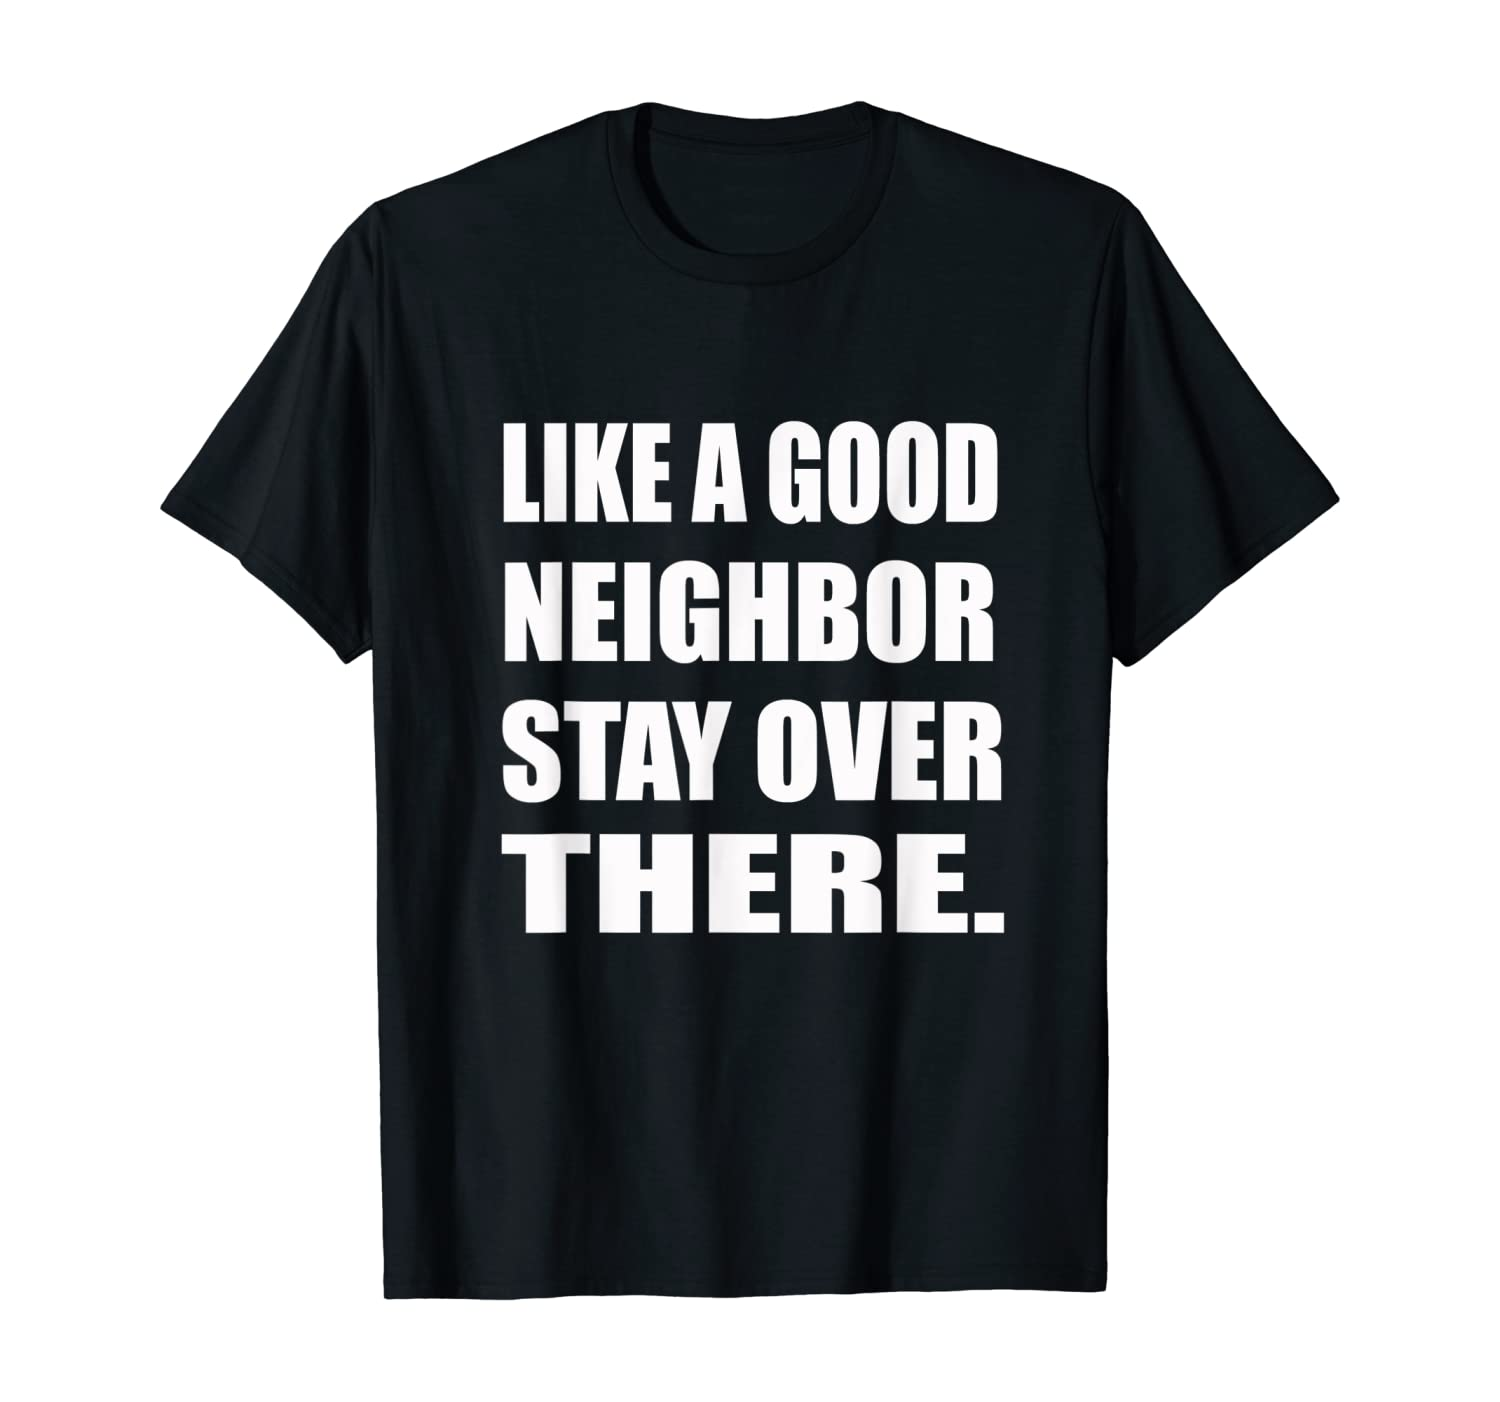 Like a Good Neighbor Stay Over There Tee | Humor, Sarcastic T-Shirt